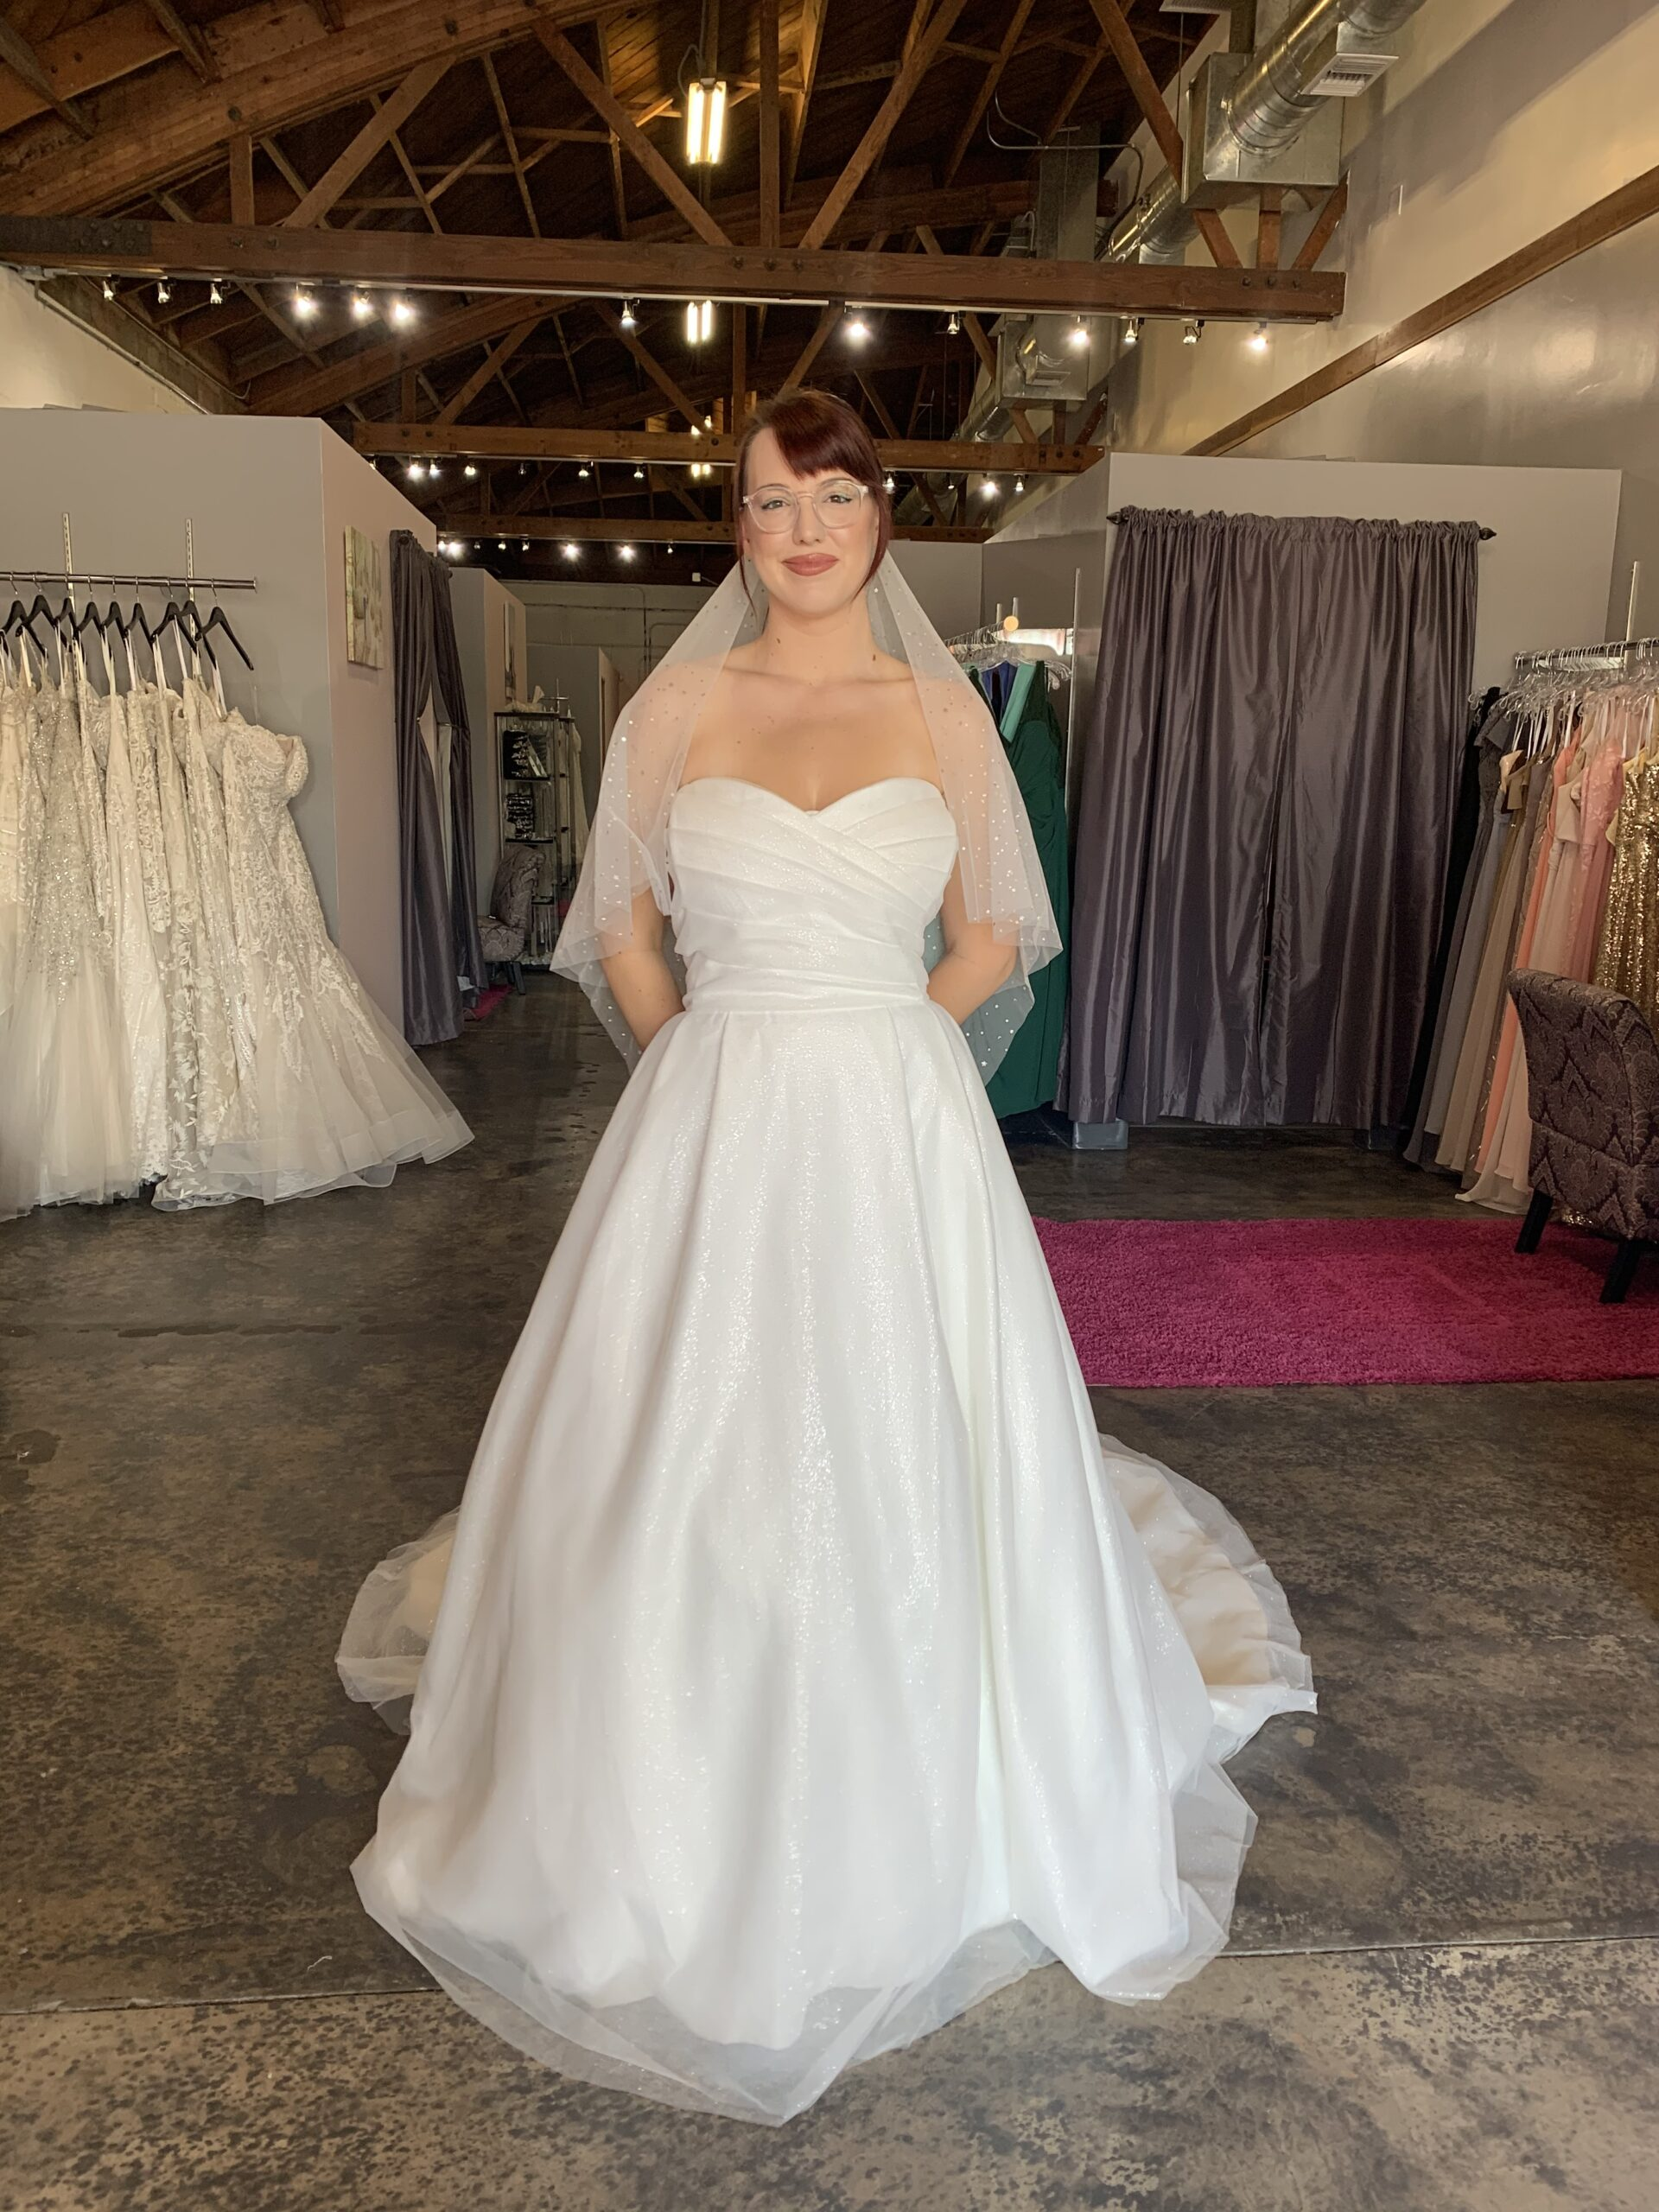 Sweetheart neckline ruched bodice sparkle tulle ballgown with sparkle moon and sun veil on tall geeky model with glasses in Longbeach California